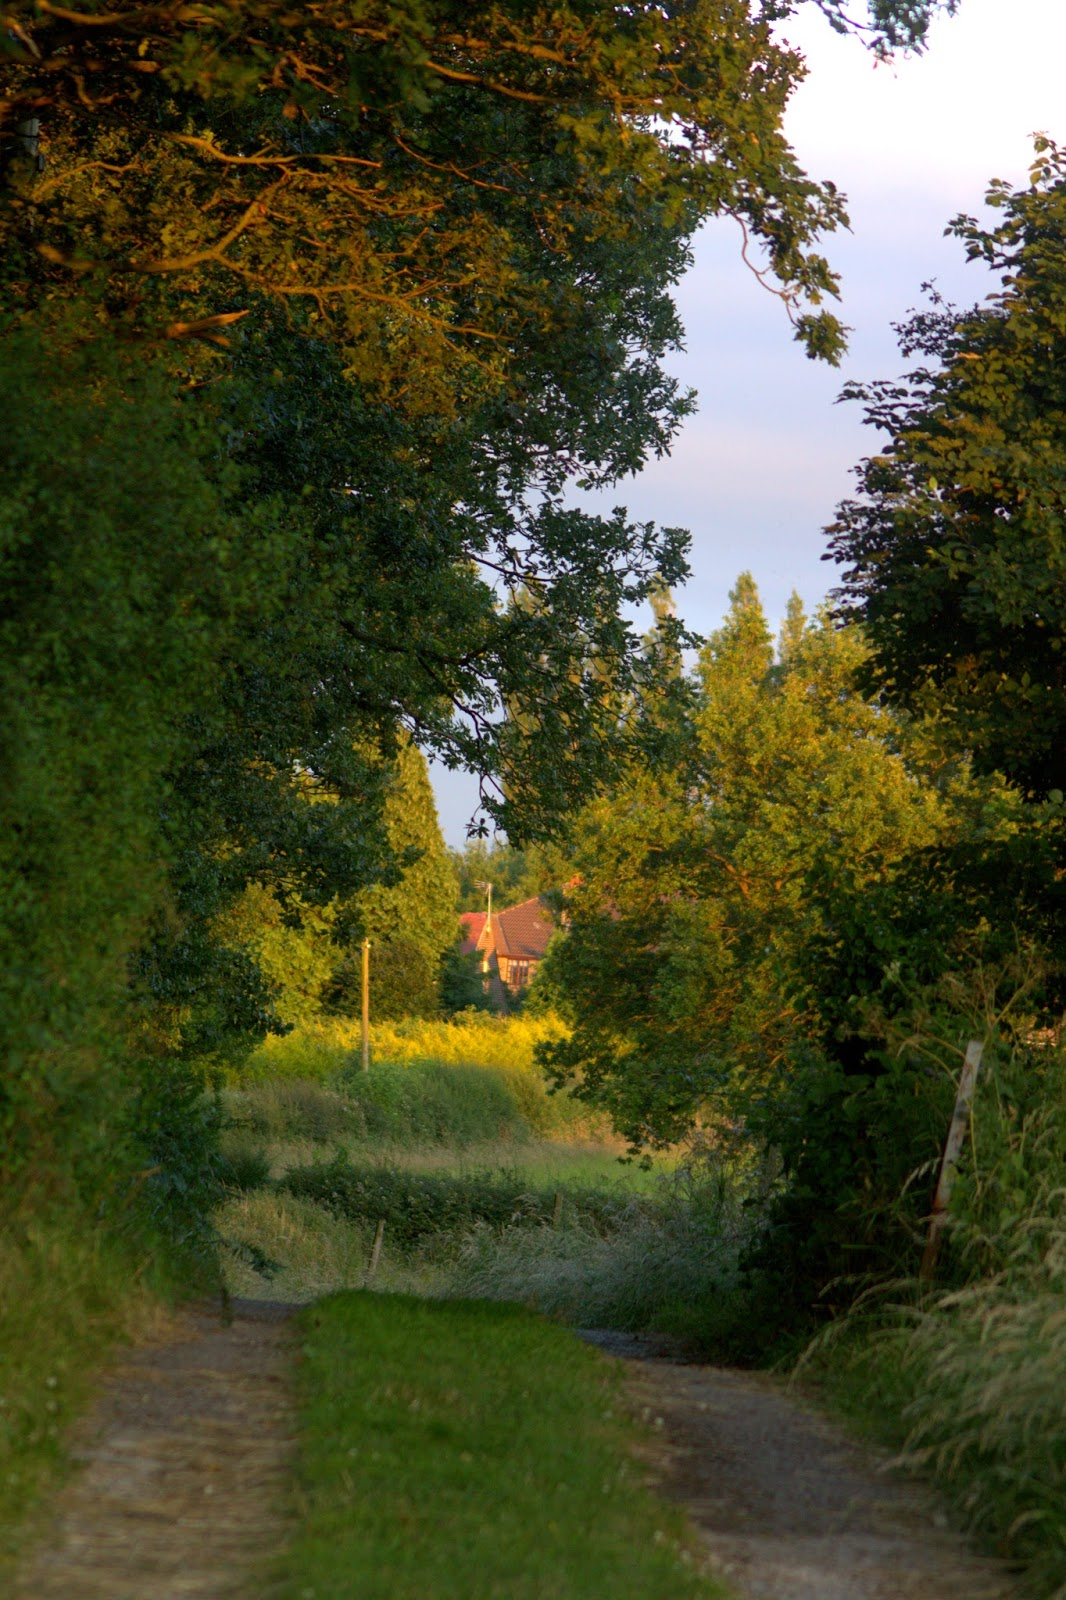 View along the road past the bench at sunset